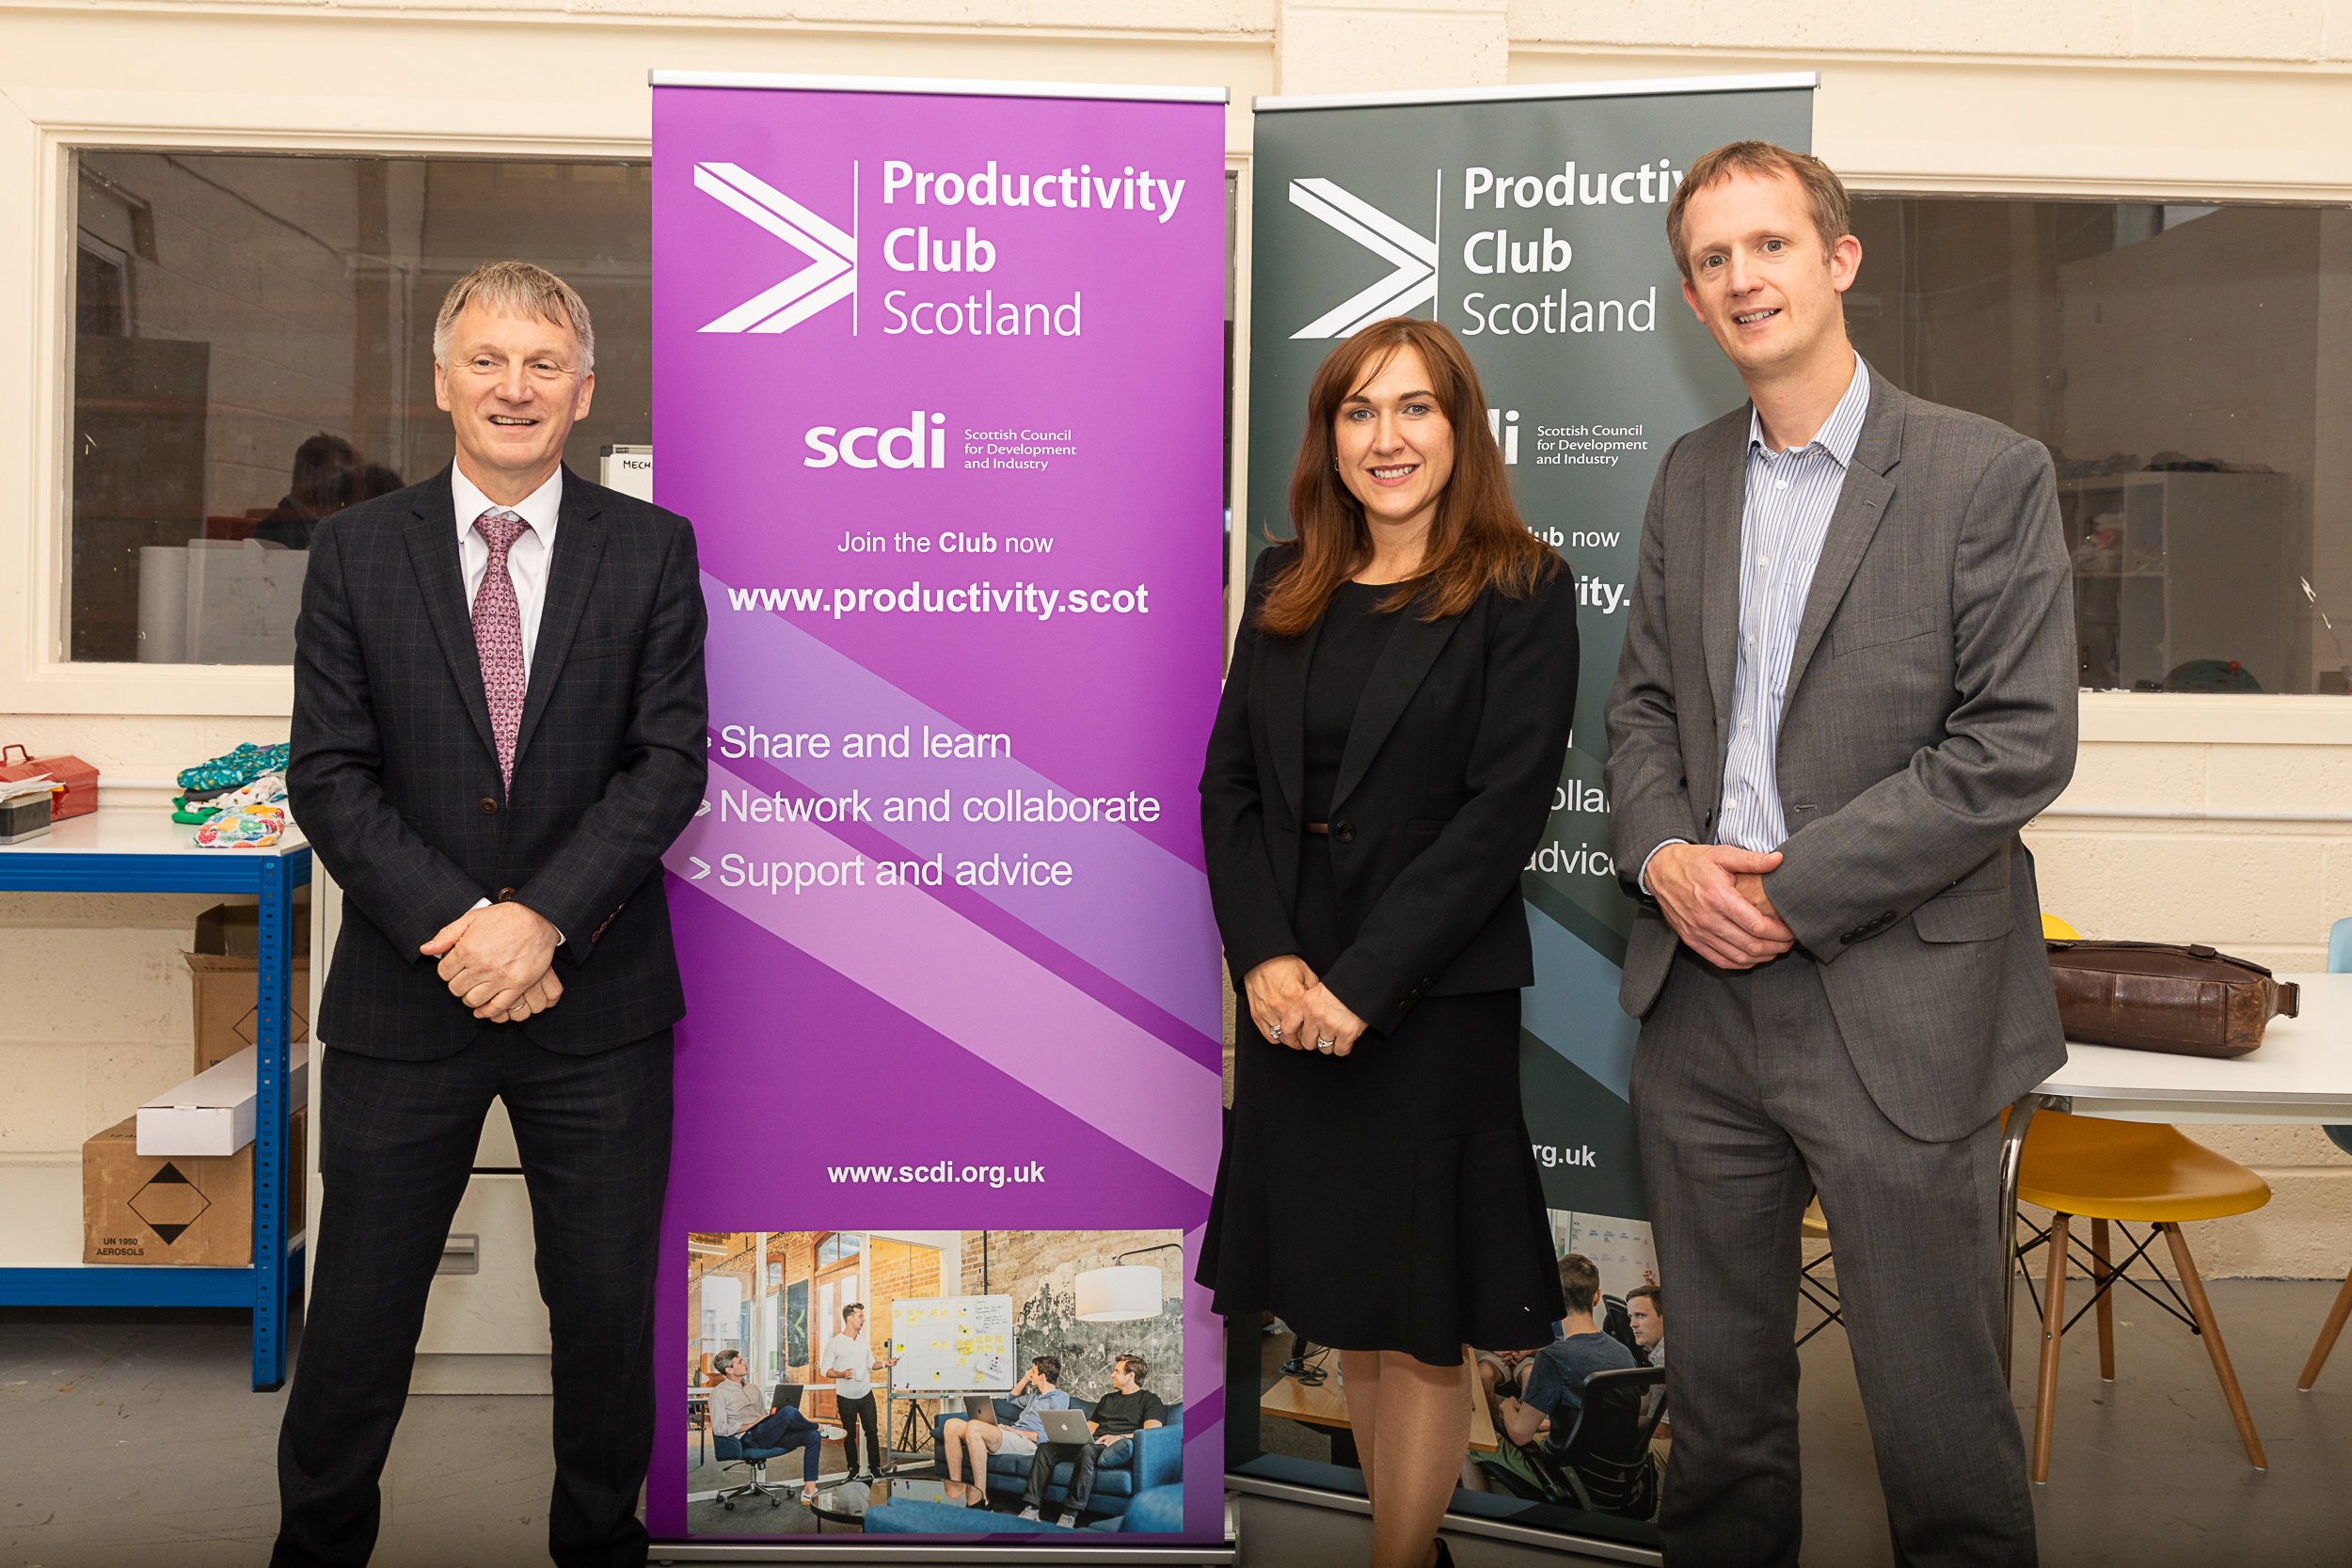 Investment Minister Ivan McKee MSP and SCDI launch Productivity Club Scotland